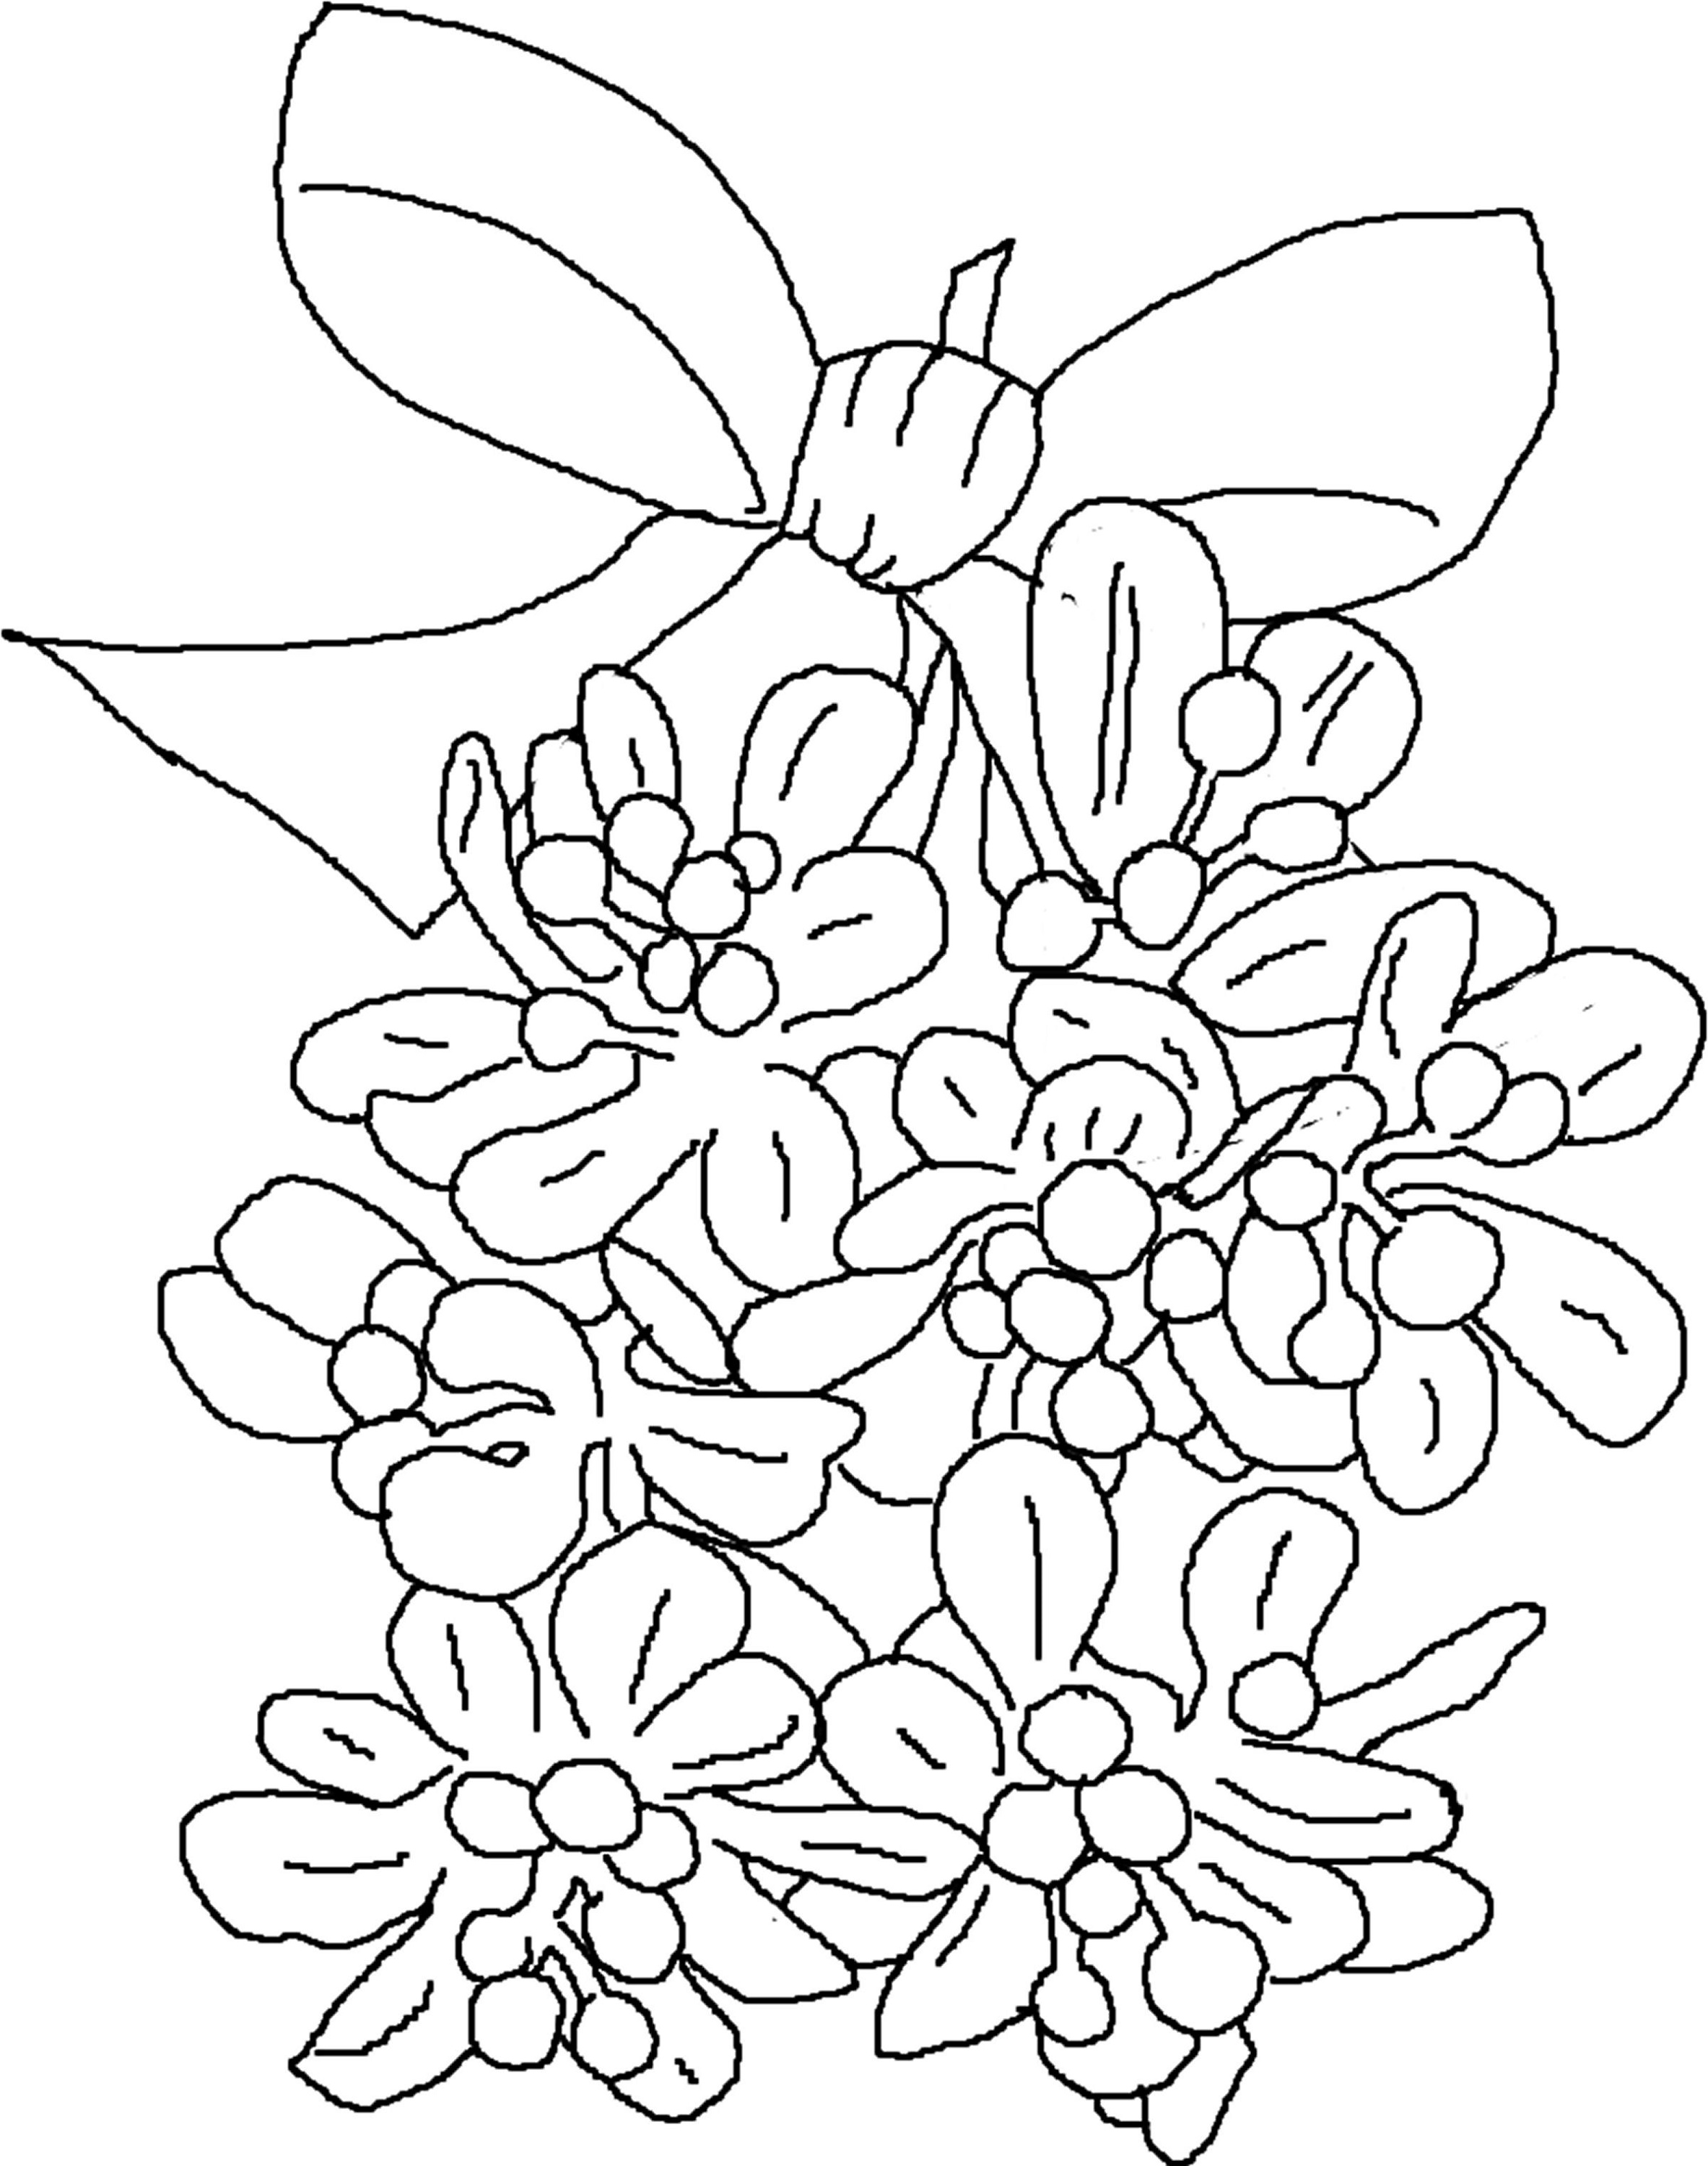 Mistletoe Coloring Pages K5 Worksheets